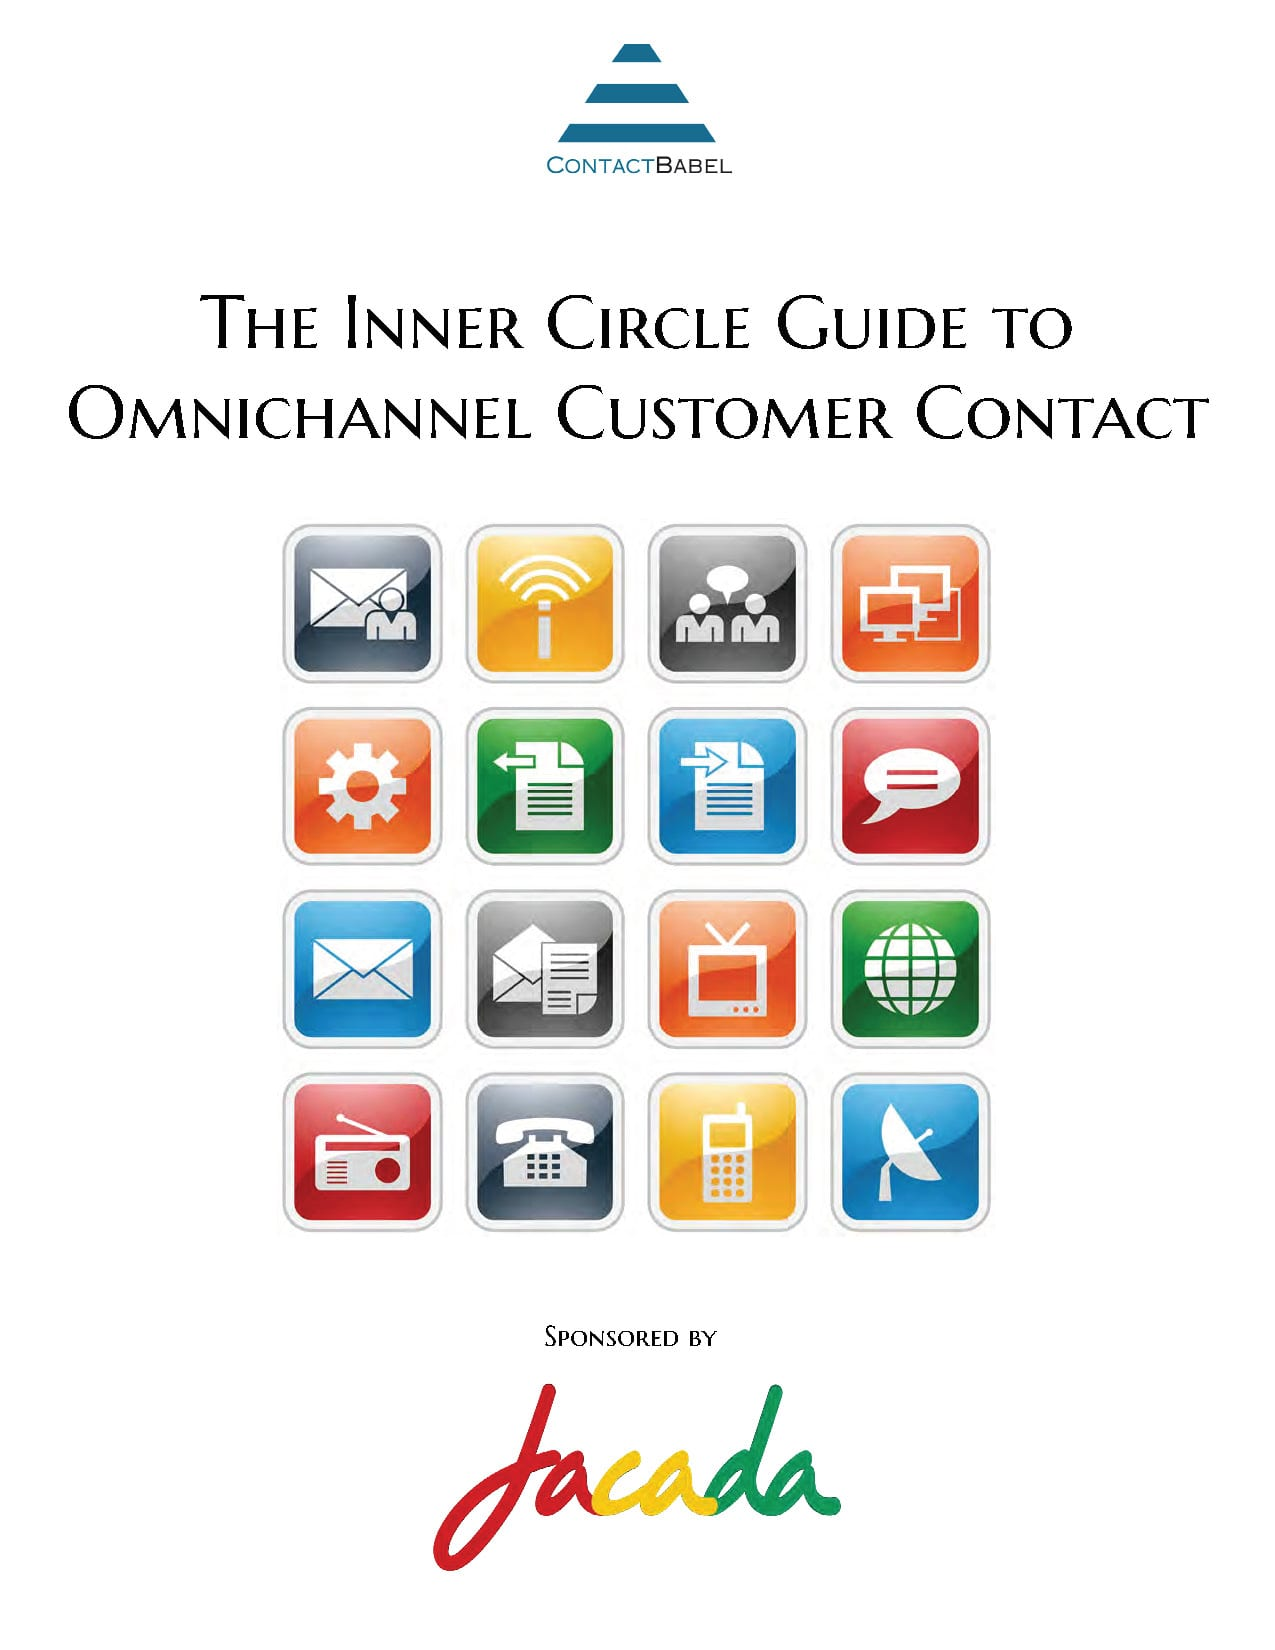 Inner-Circle-Guide-to-Omnichannel-Jacada-ContactBabel-US_Page_001